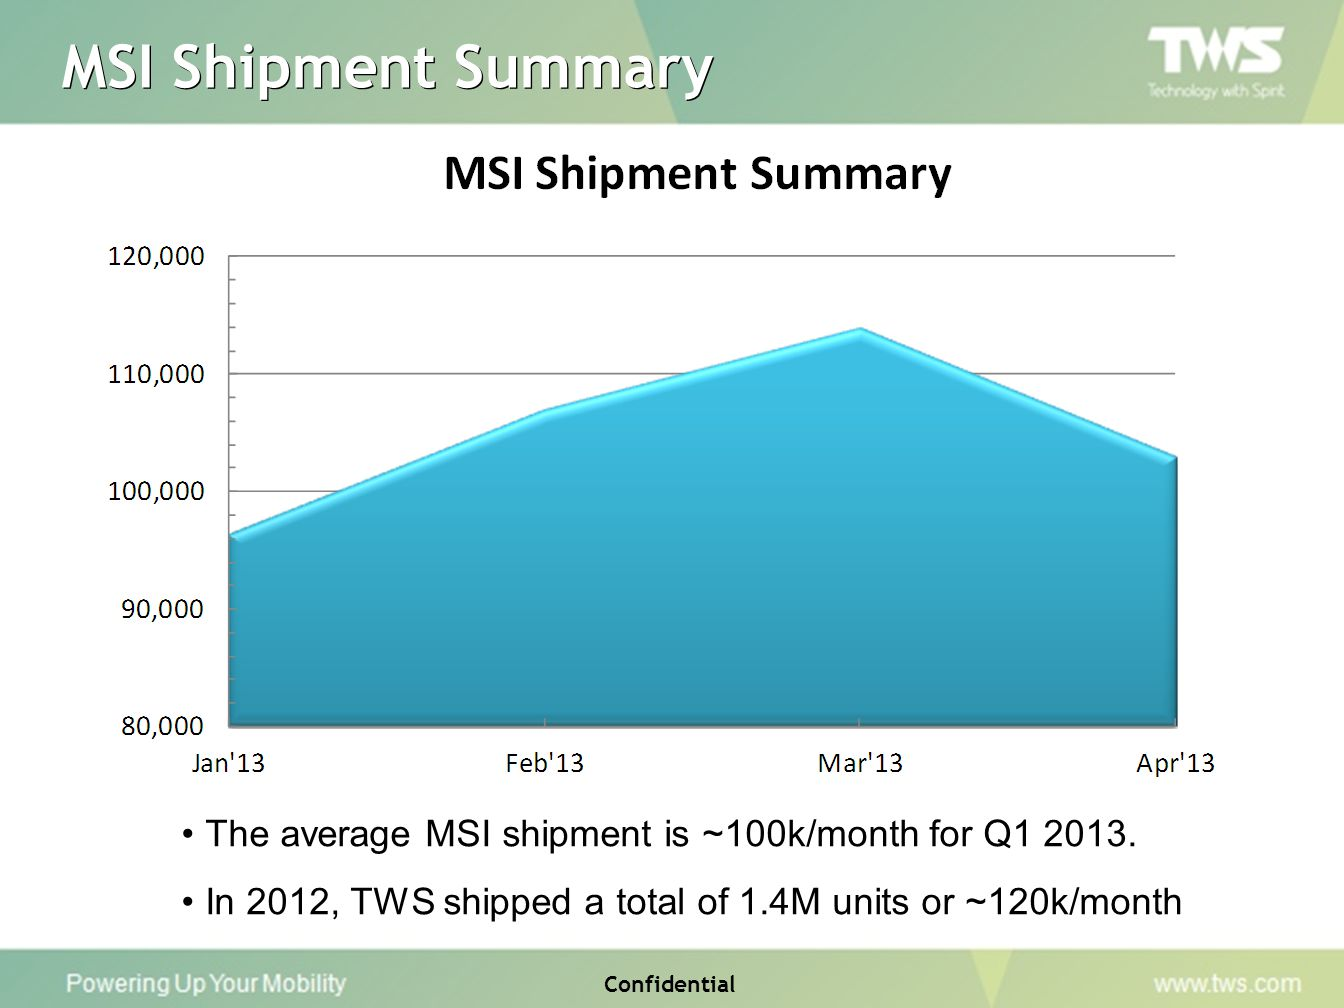 MSI Shipment Summary The average MSI shipment is ~100k/month for Q1 2013. In 2012, TWS shipped a total of 1.4M units or ~120k/month.